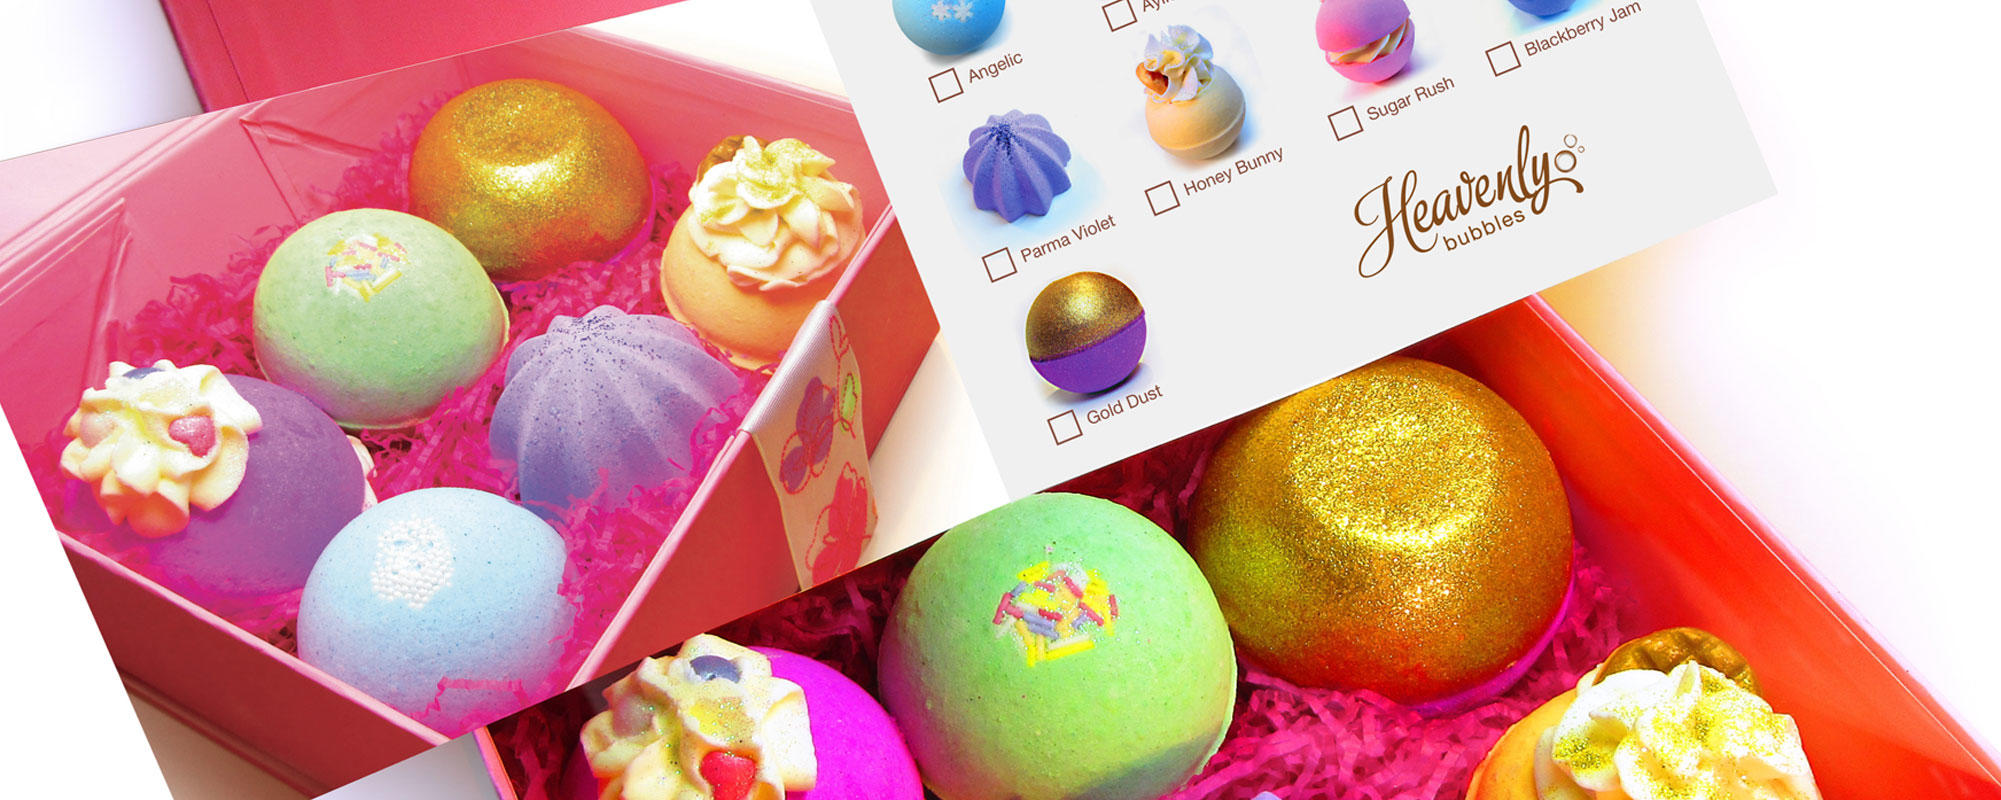 FREE Bath Bomb with orders of £20 and over